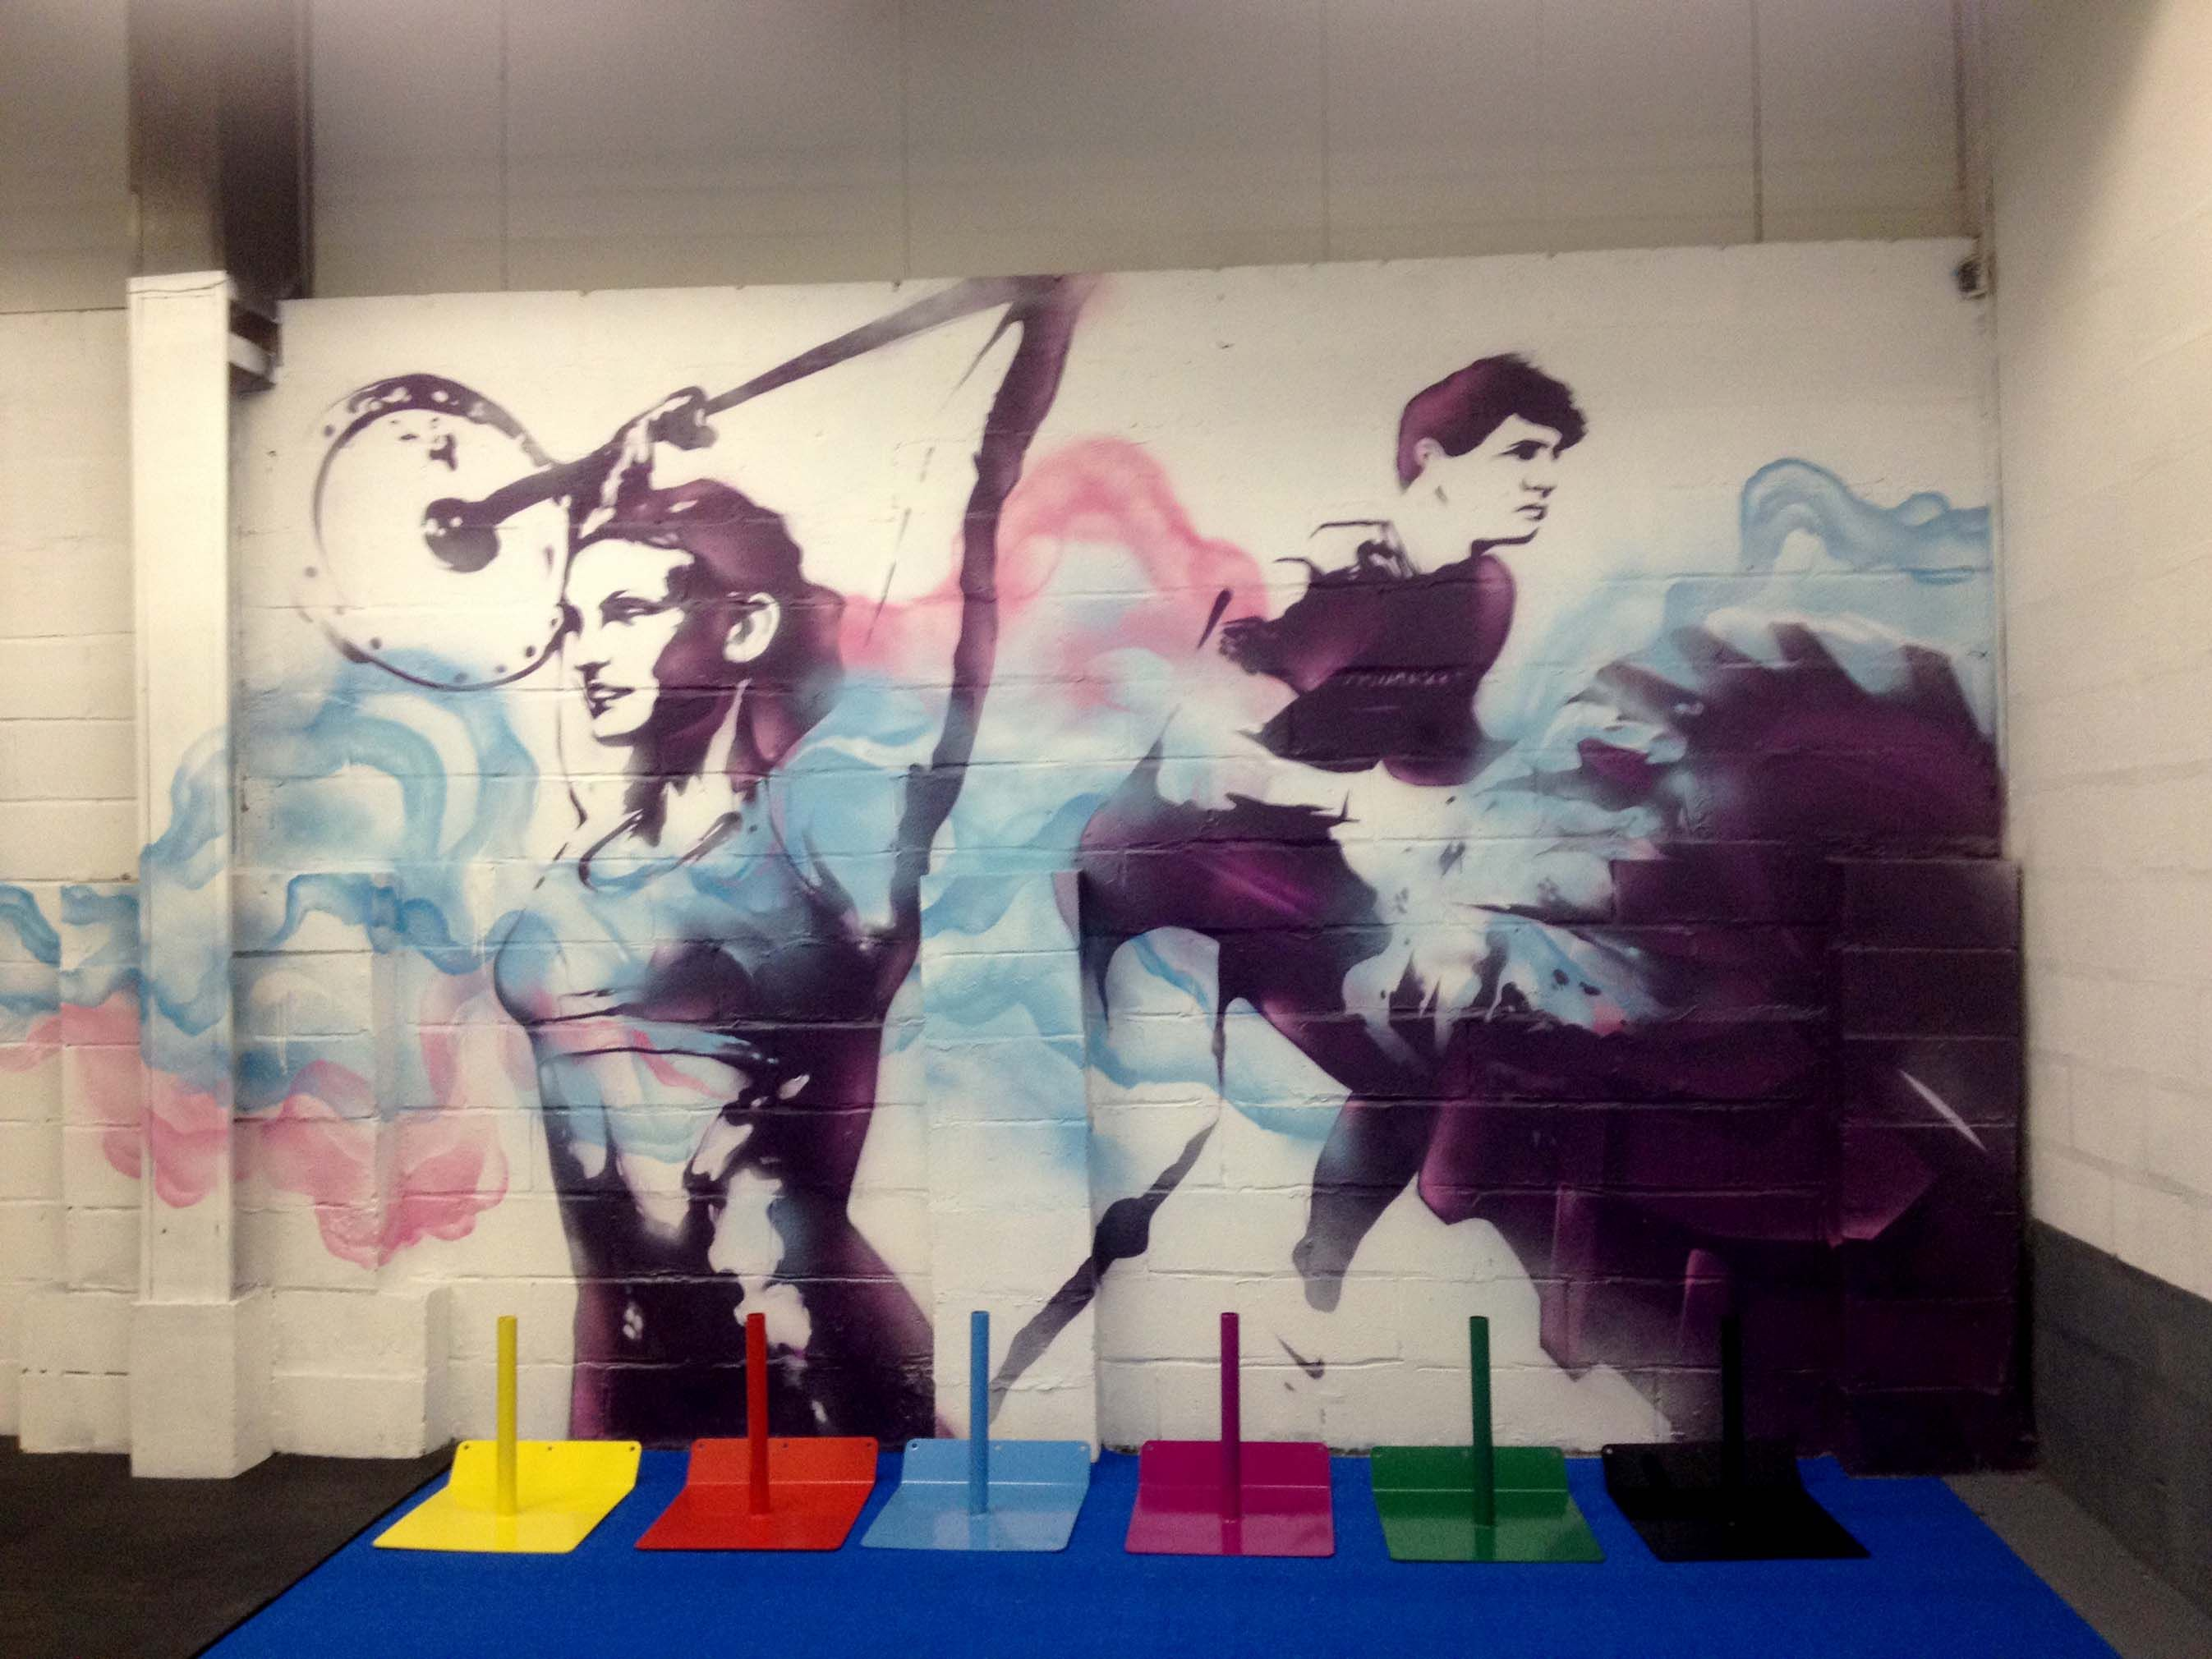 New crossfit gym mural for wod house a functional